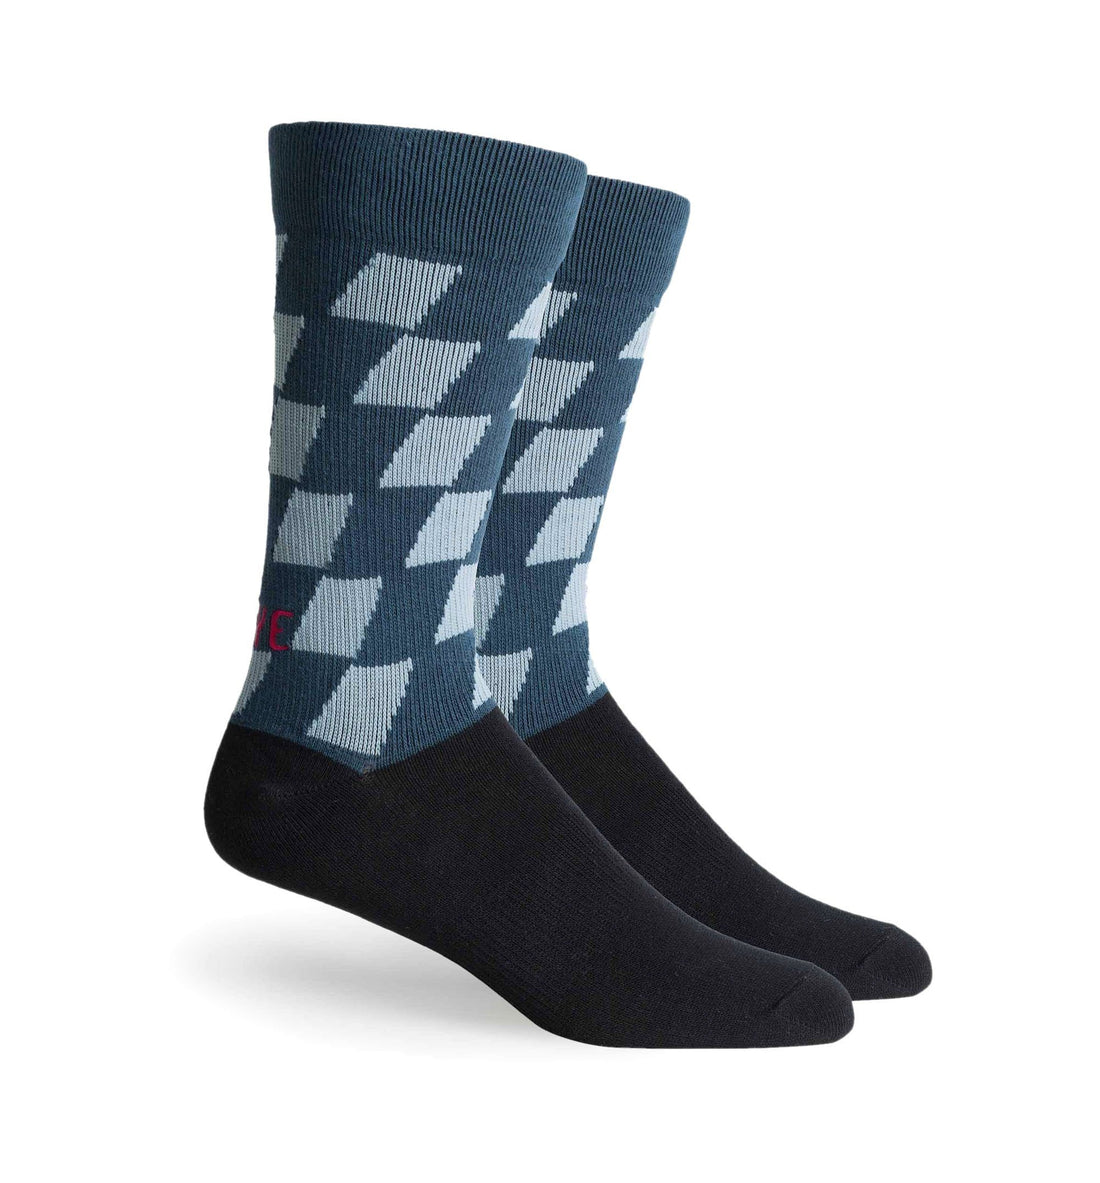 Richer Poorer Inc Drive Sock - Black Teal - Socks/Underwear - Iron and Resin